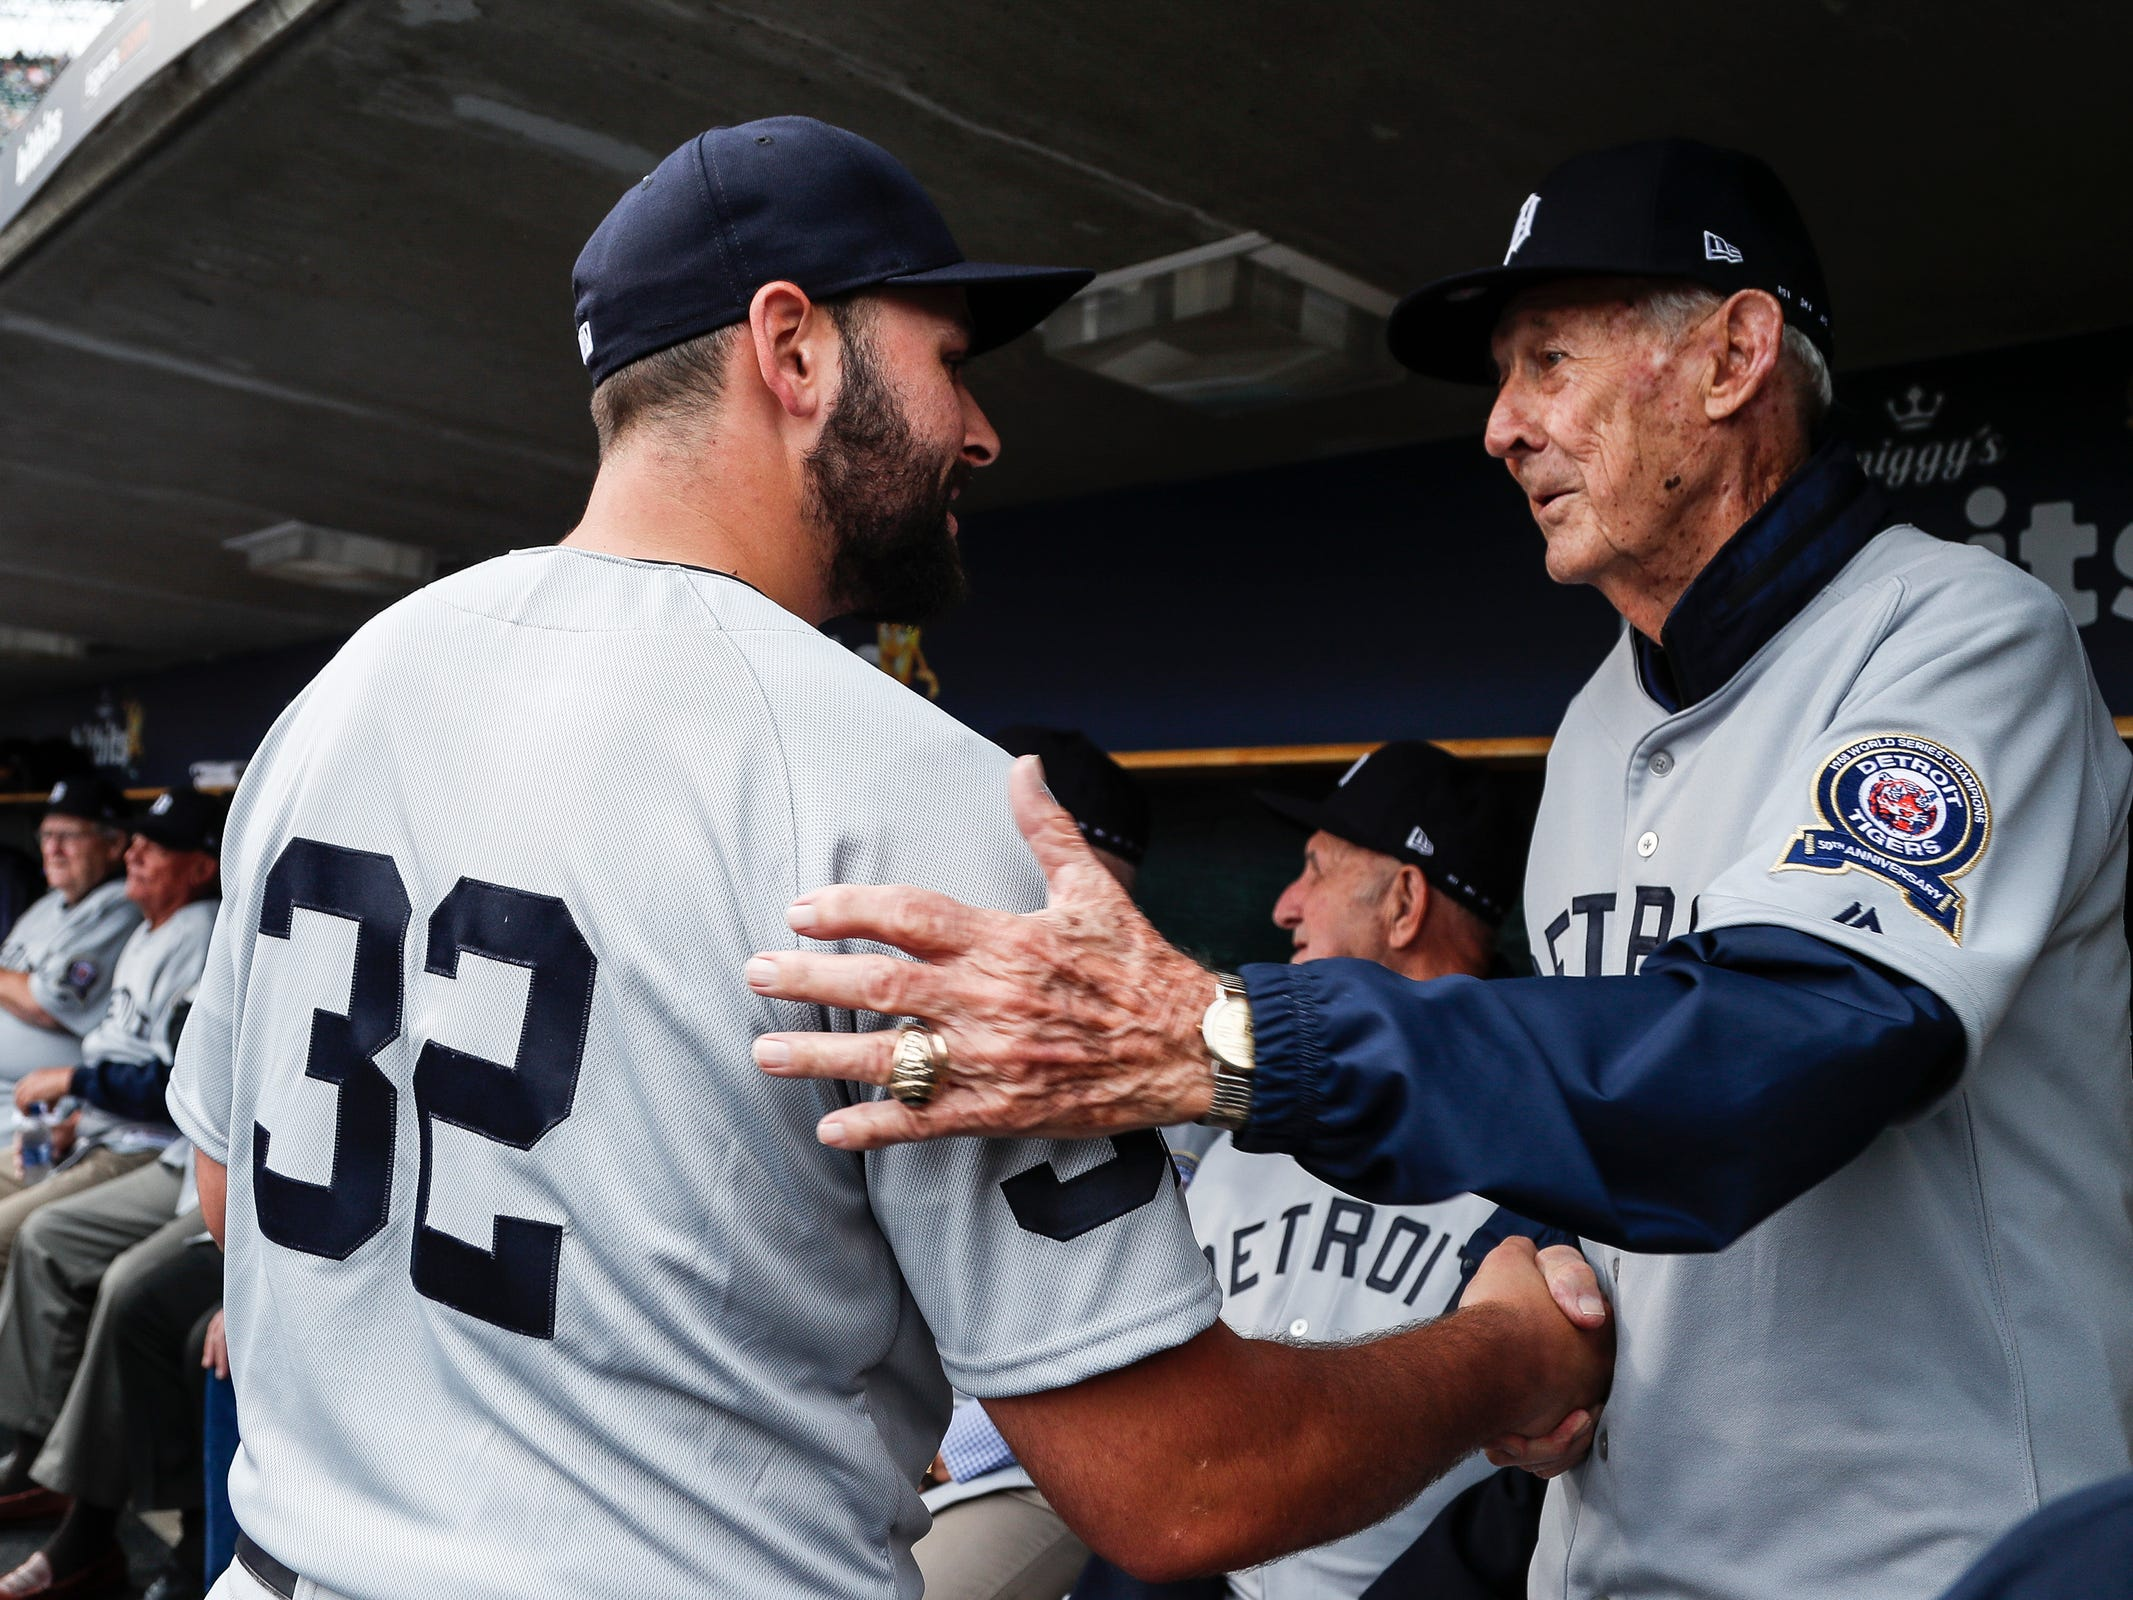 Detroit Tigers pitcher Michael Fulmer shakes hands with former Tigers coach Hal Naragon during the celebration of the 50th anniversary of the 1968 World Series championship at Comerica Park in Detroit, Saturday, Sept. 8, 2018.